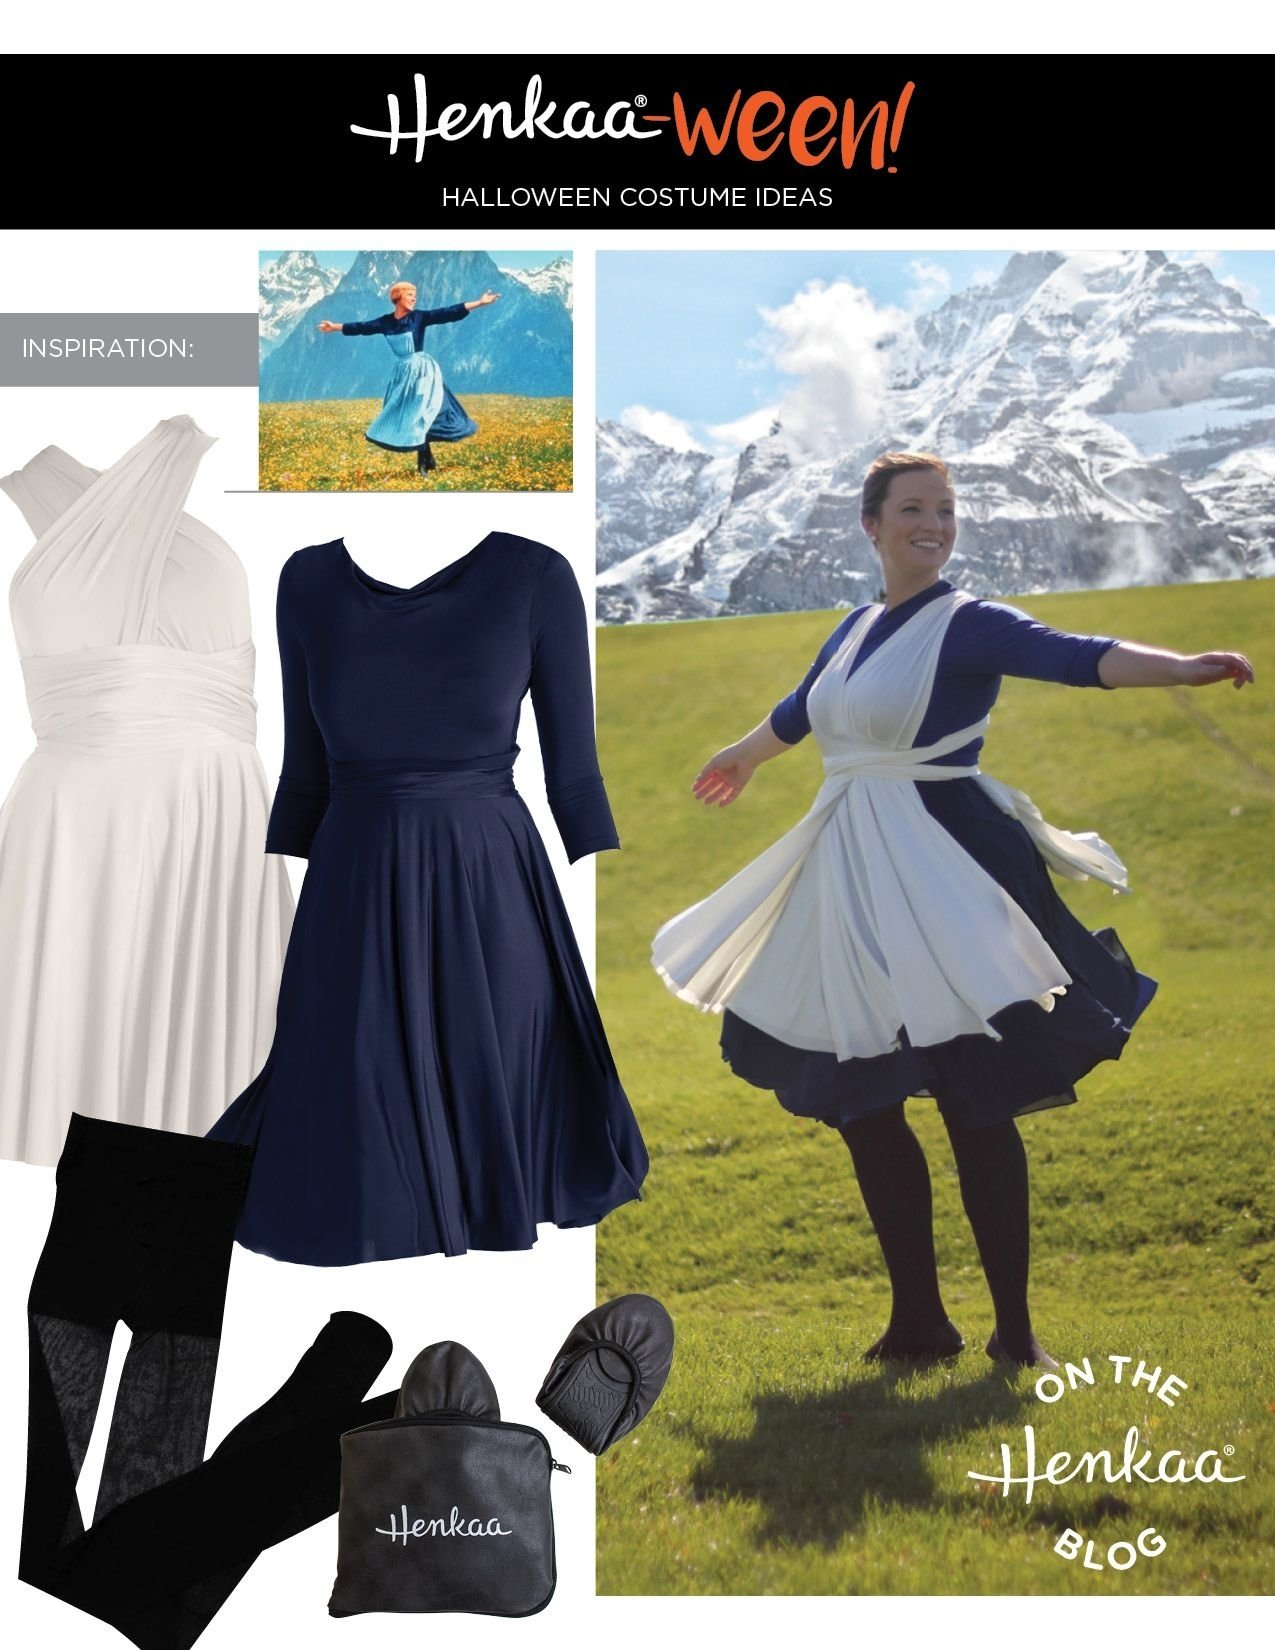 10 Most Recommended Sound Of Music Costume Ideas sound of music maria costume halloween meme costumes and 2021